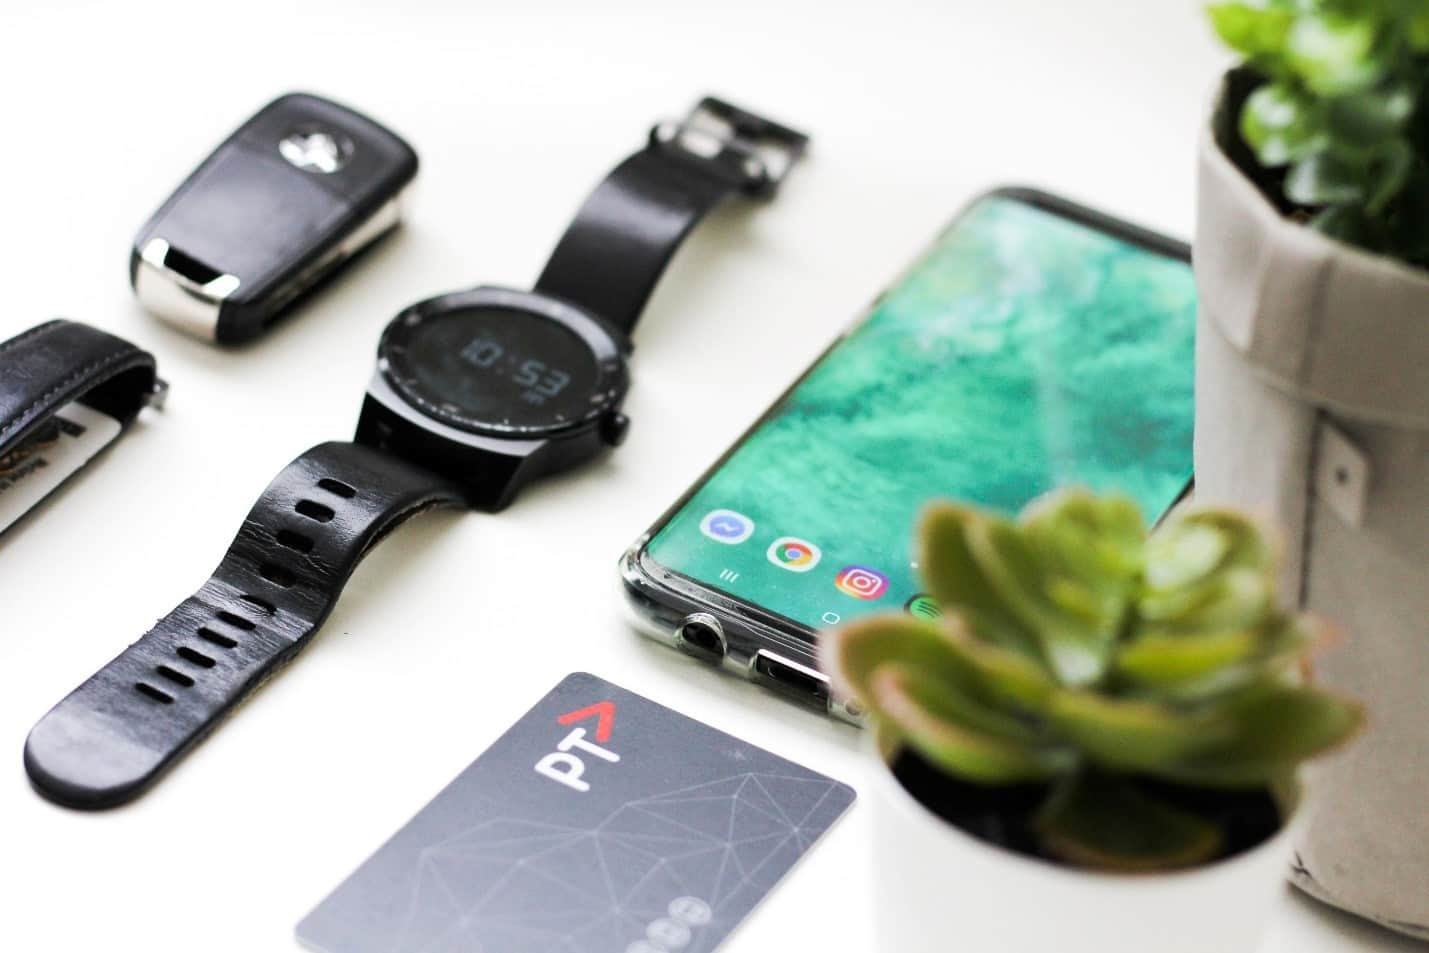 content/es-mx/images/repository/isc/2020/9910/should-you-worry-about-smartwatch-security-1.jpg